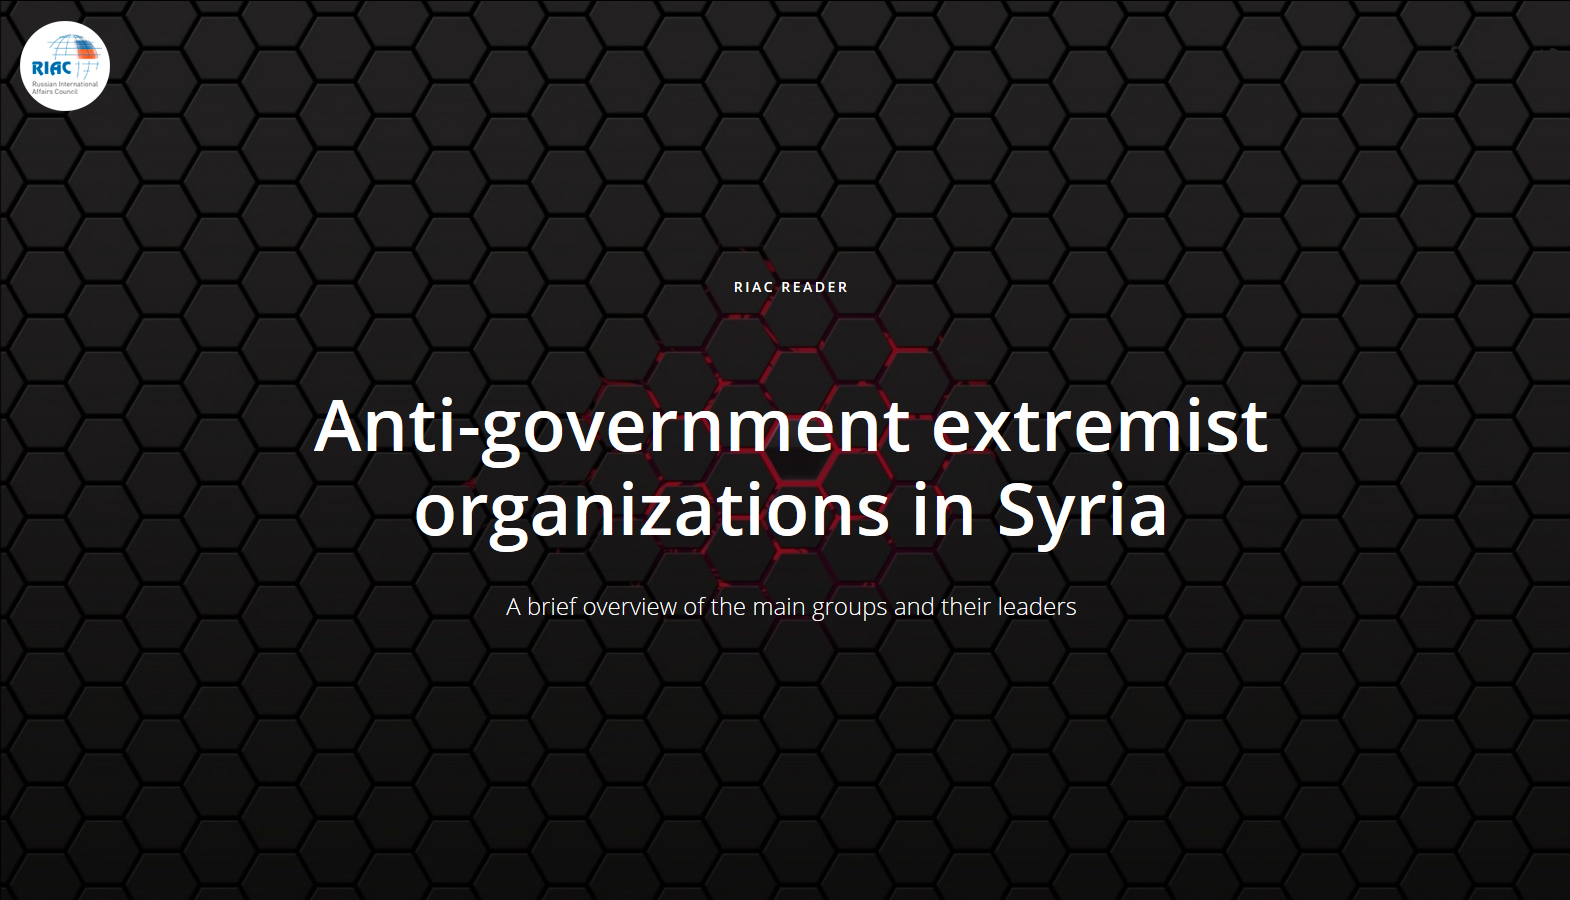 Anti-government extremist organizations in Syria